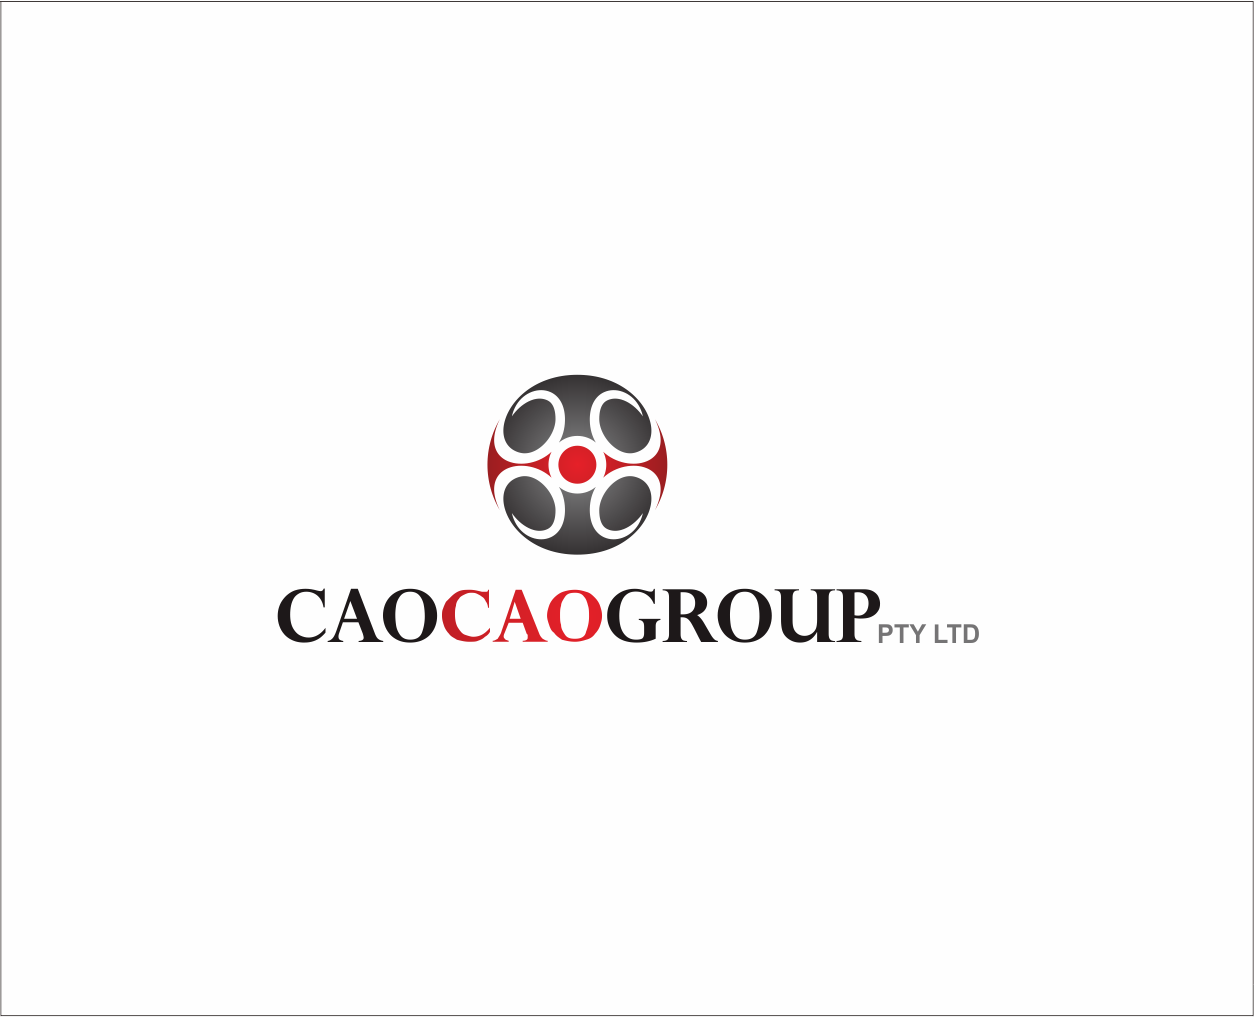 Logo Design by Armada Jamaluddin - Entry No. 109 in the Logo Design Contest cao cao group pty ltd Logo Design.